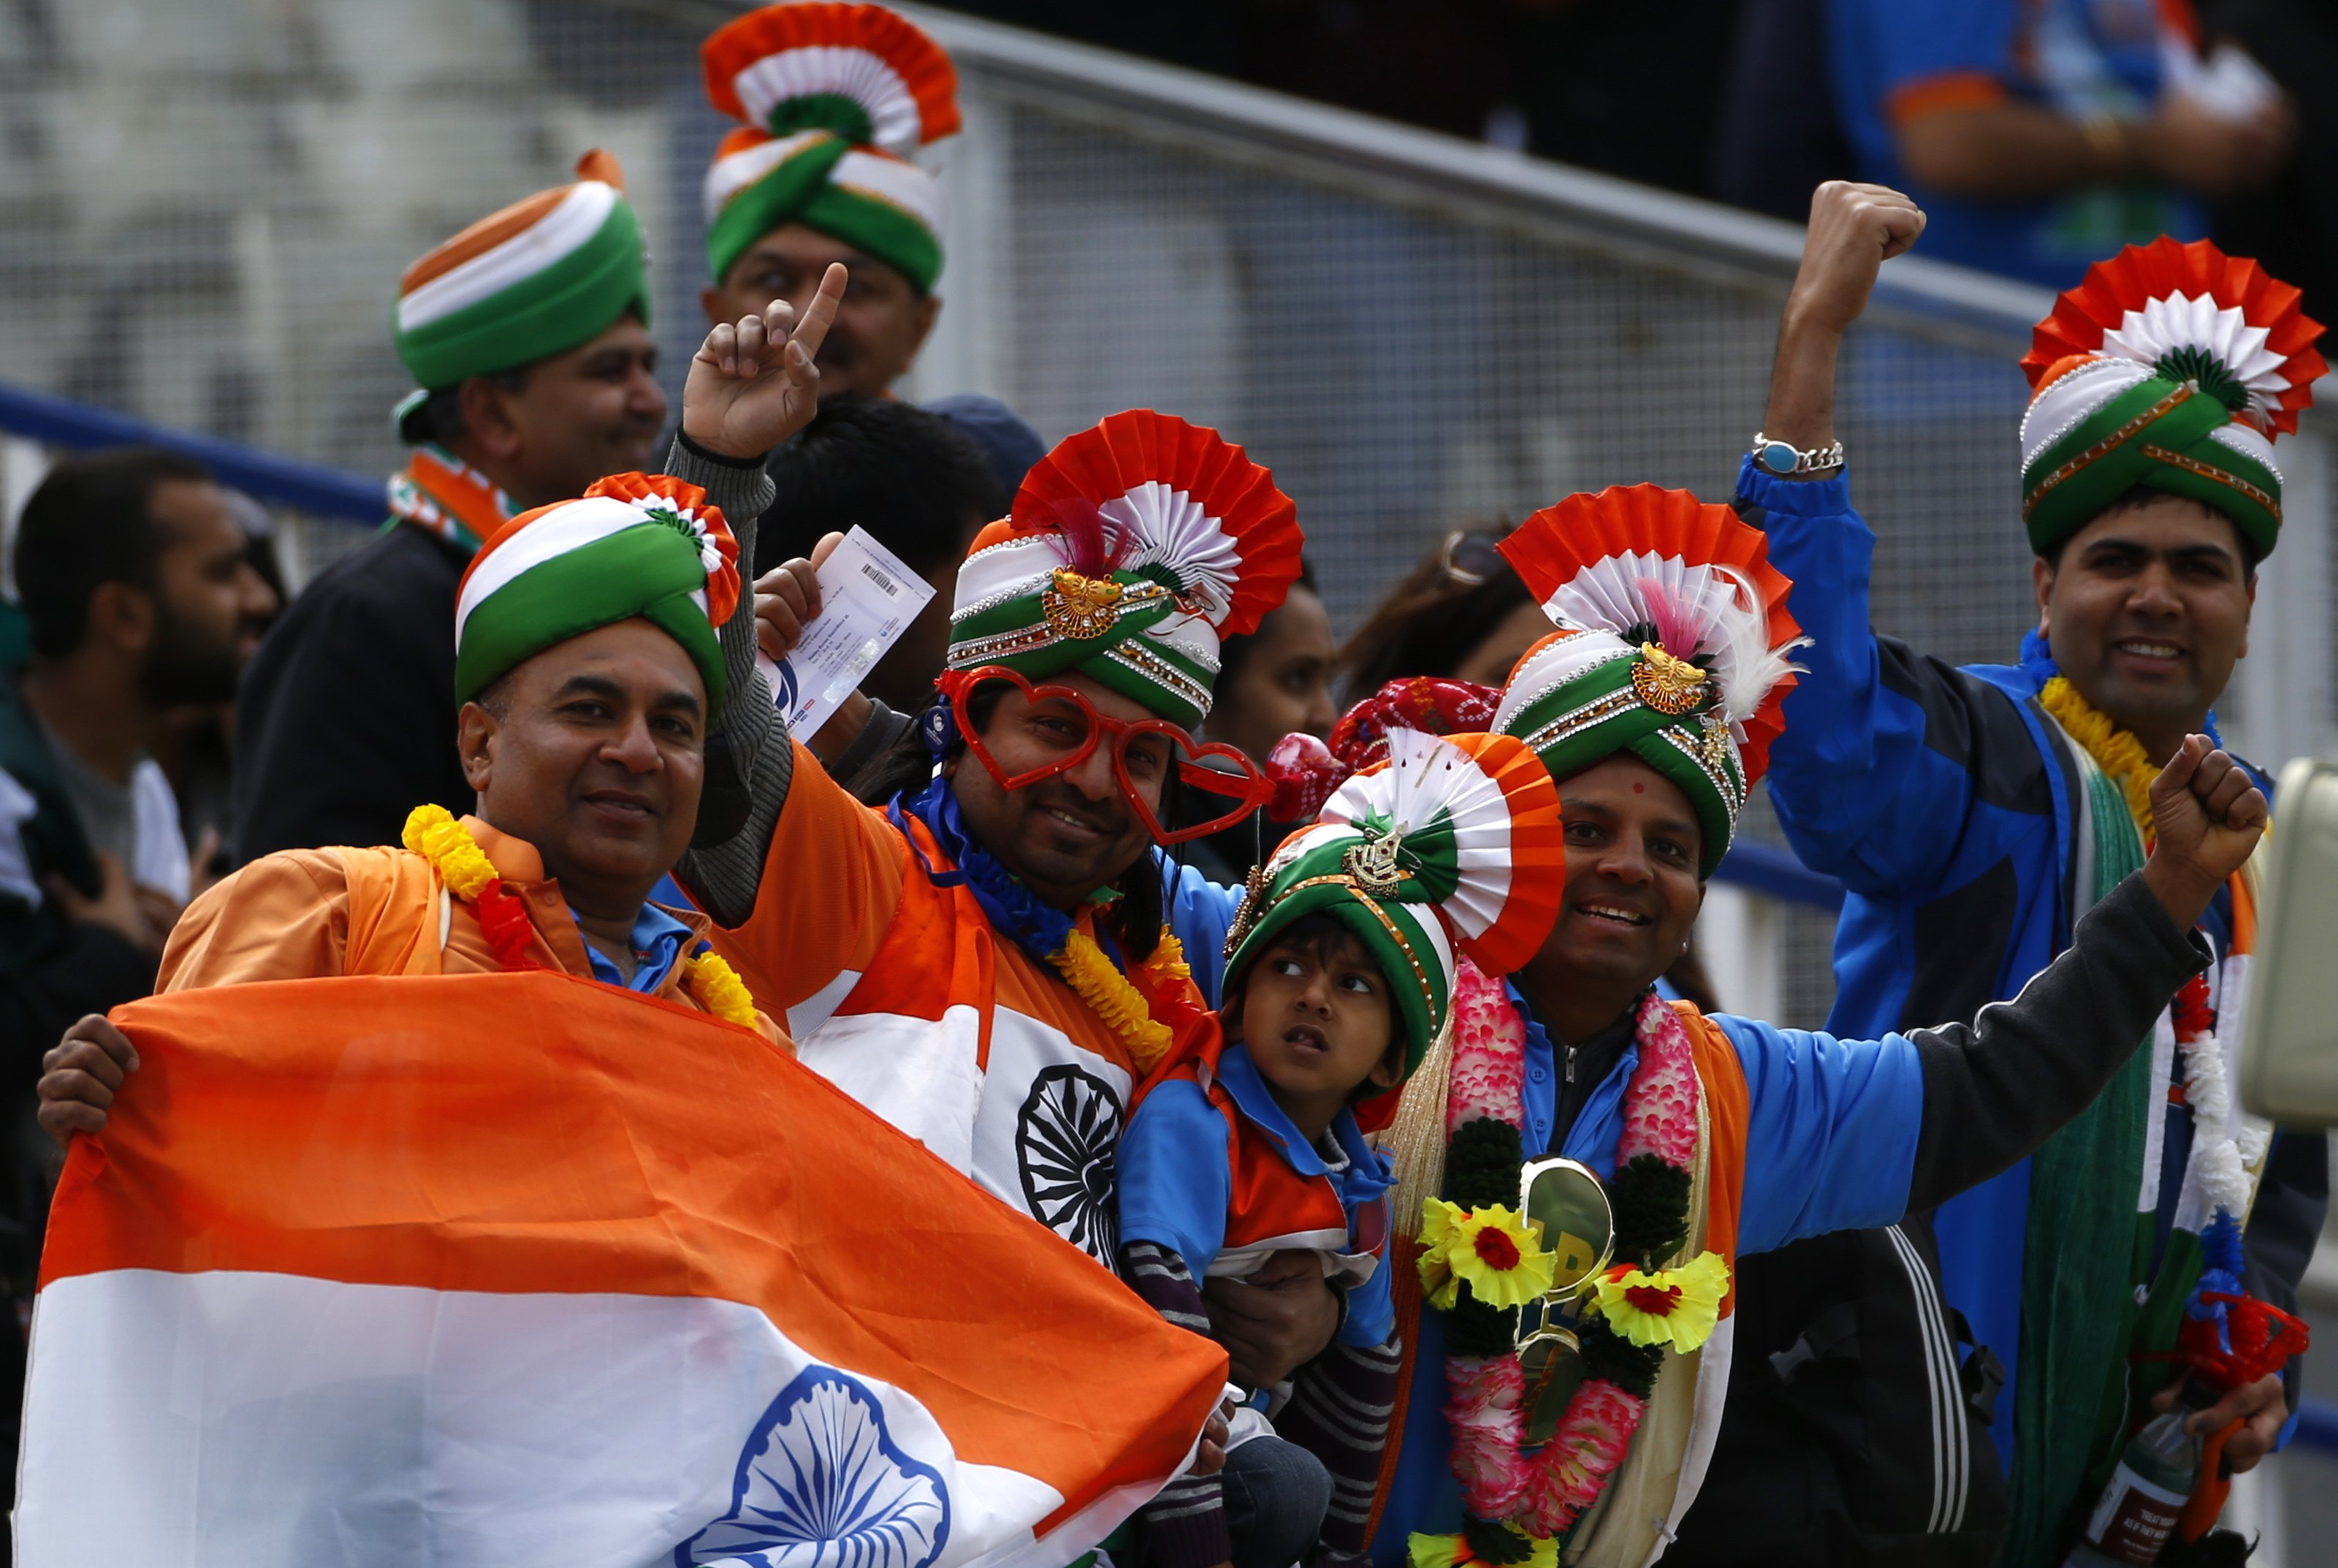 India fans pose before their ICC Champions Trophy group B match against Pakistan at Edgbaston cricket ground in Birmingham, central England, June 15, 2013. REUTERS/Darren Staples (BRITAIN - Tags: SPORT CRICKET)